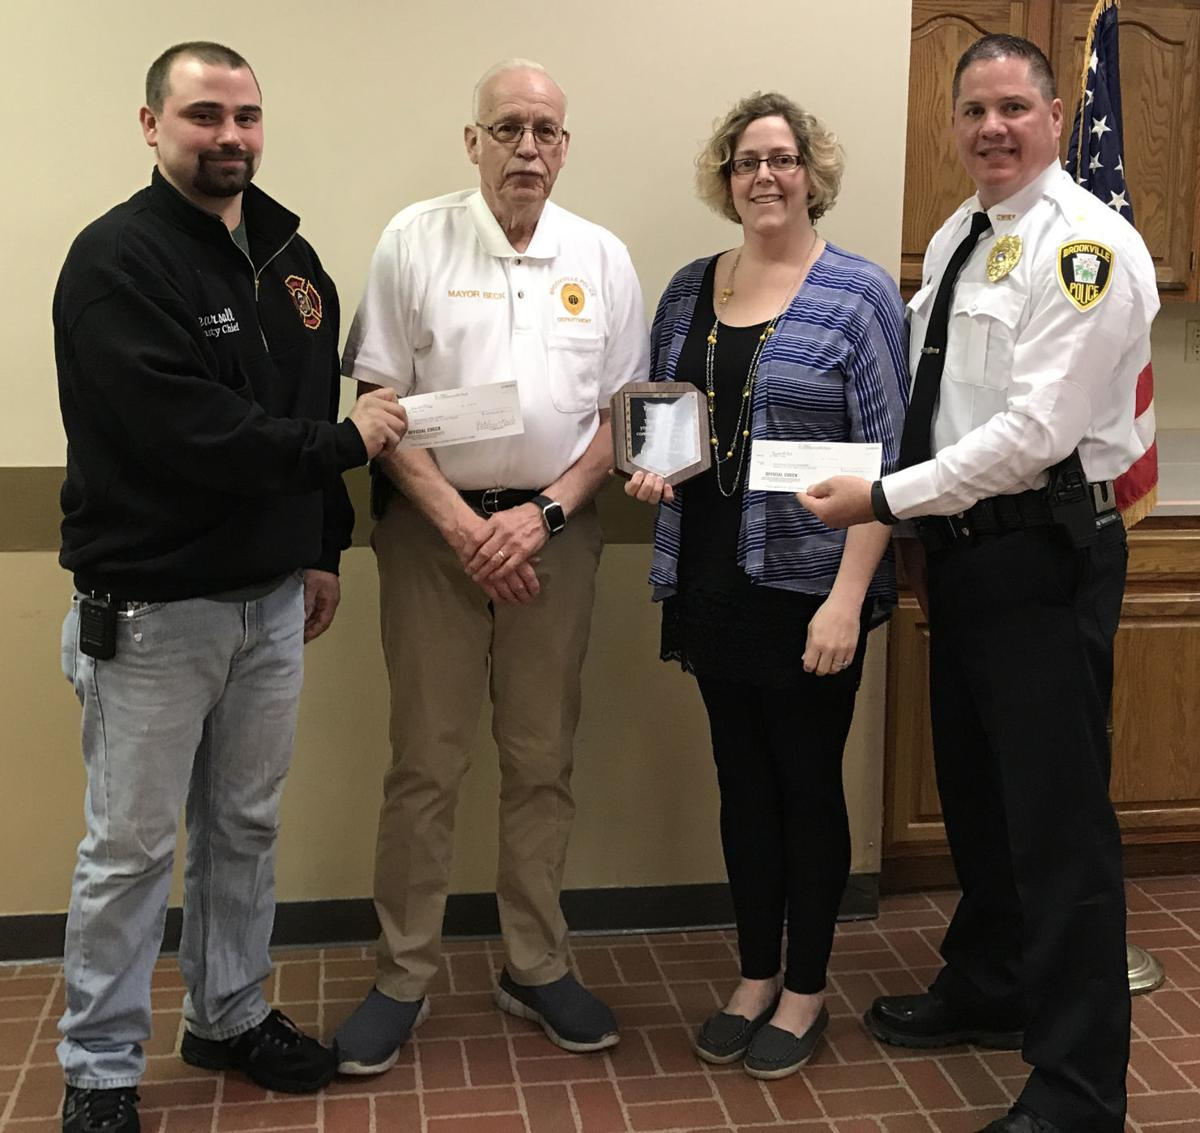 Donating to the borough police and fire departments